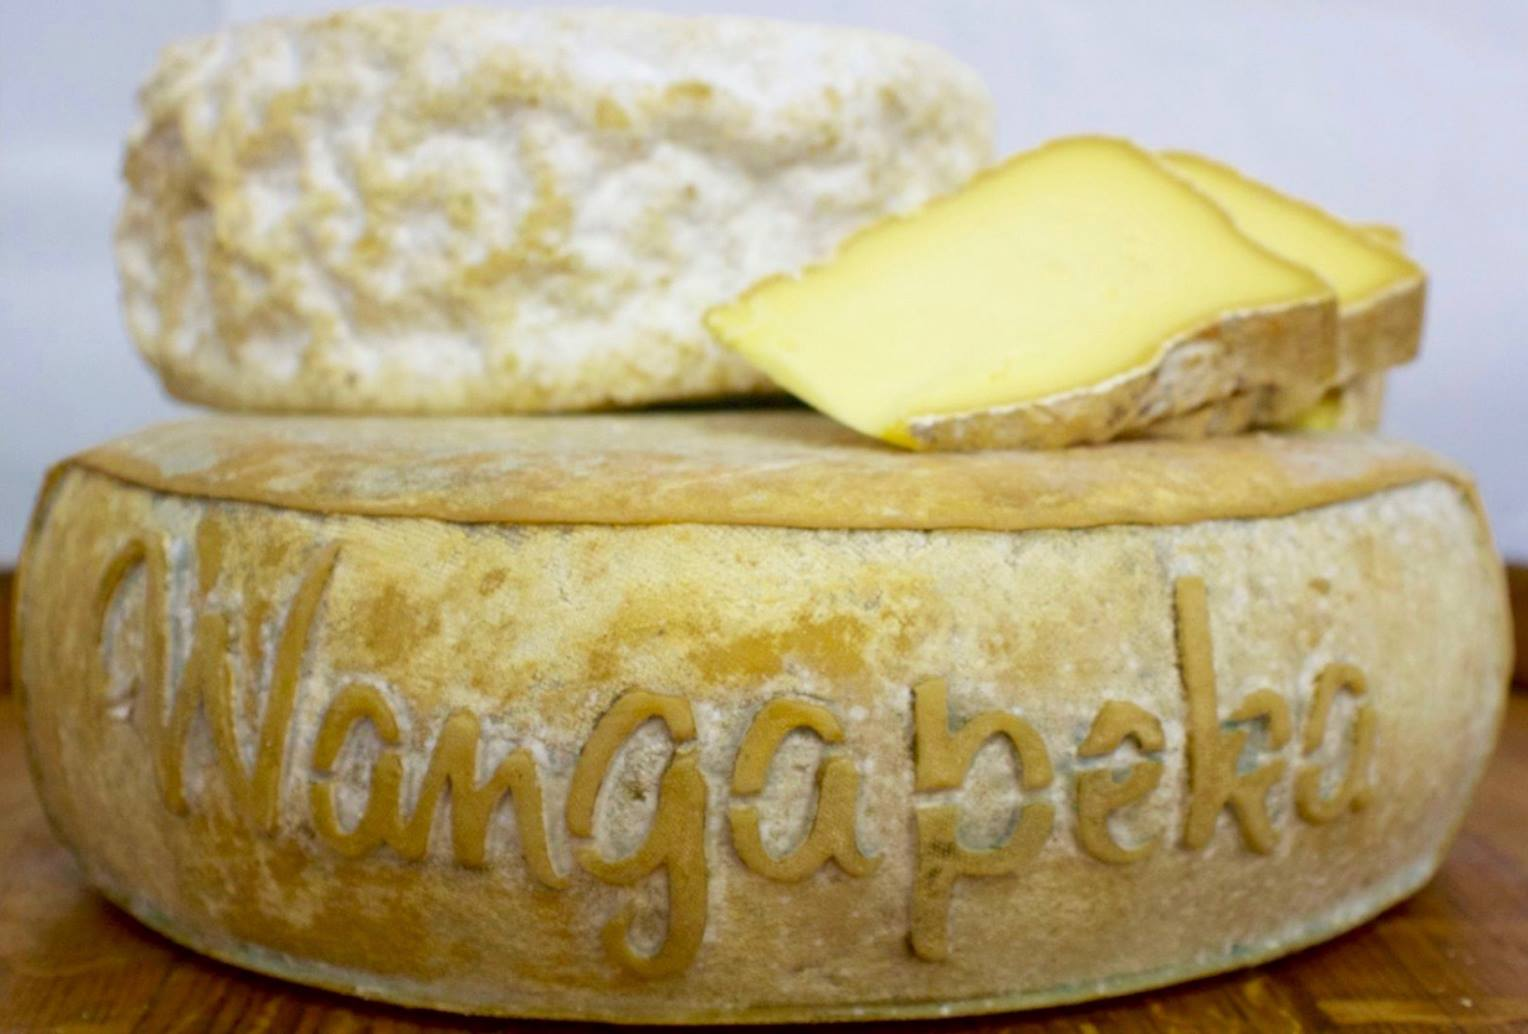 Magnificent full rounds of Wangapeka Cheese